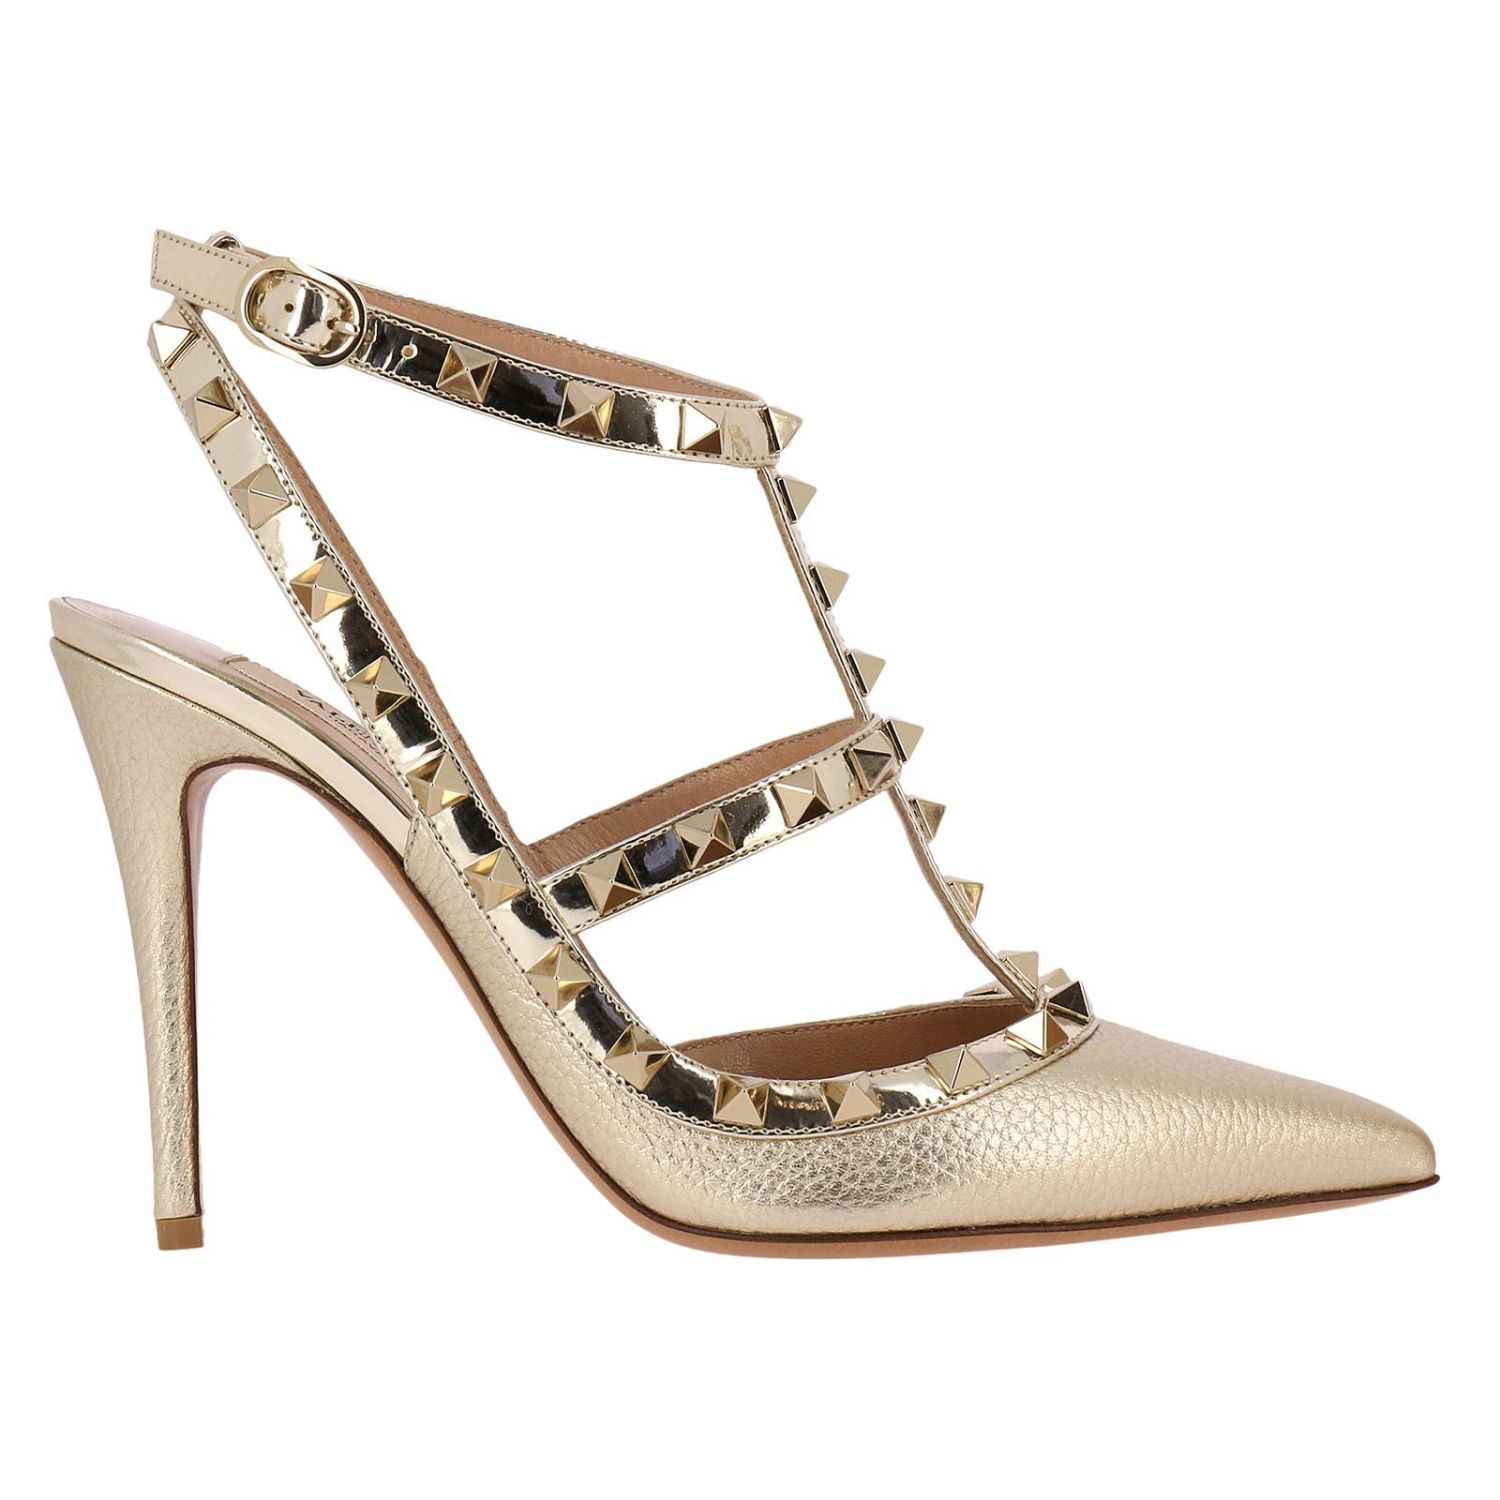 Pumps Valentino Rockstud Pumps With Ankle Atrap In Genuine Laminated Leather With Micro Metal Studs 8287319